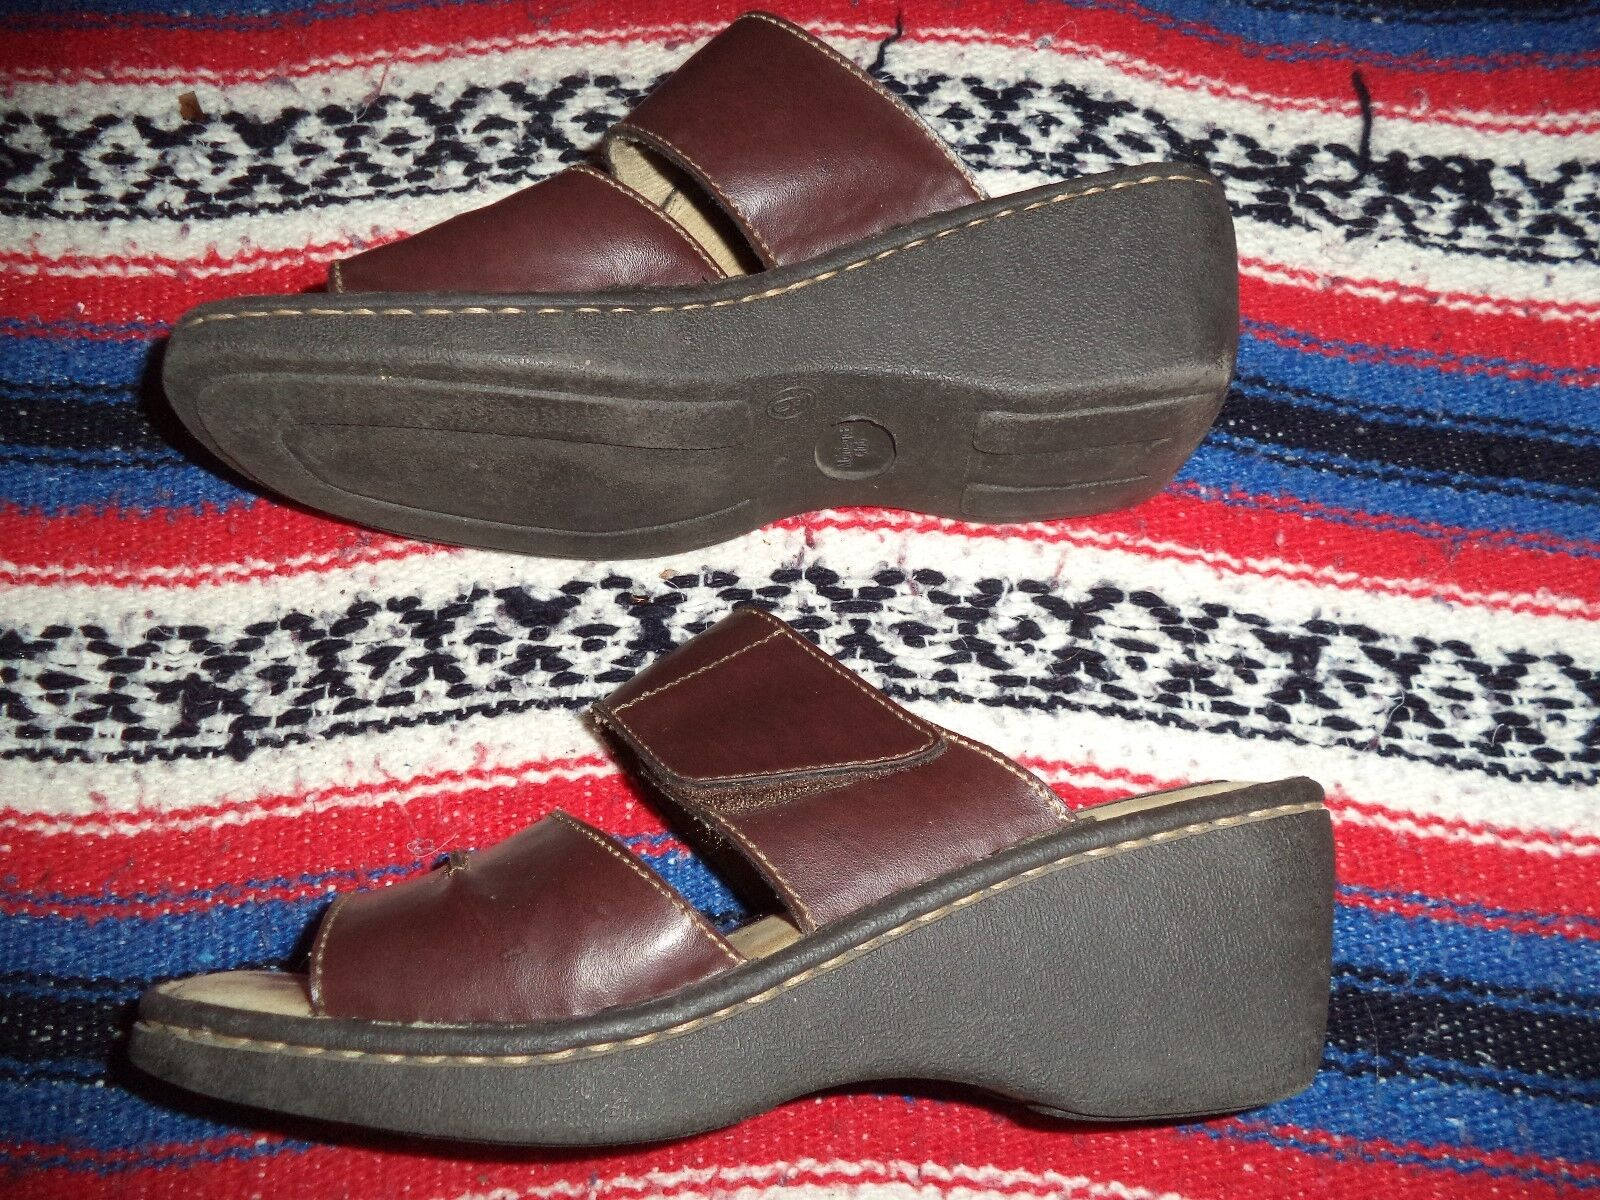 MONTEGO CLUB BAY CLUB MONTEGO SANDALS WOMEN'S SIZE 9 07e745